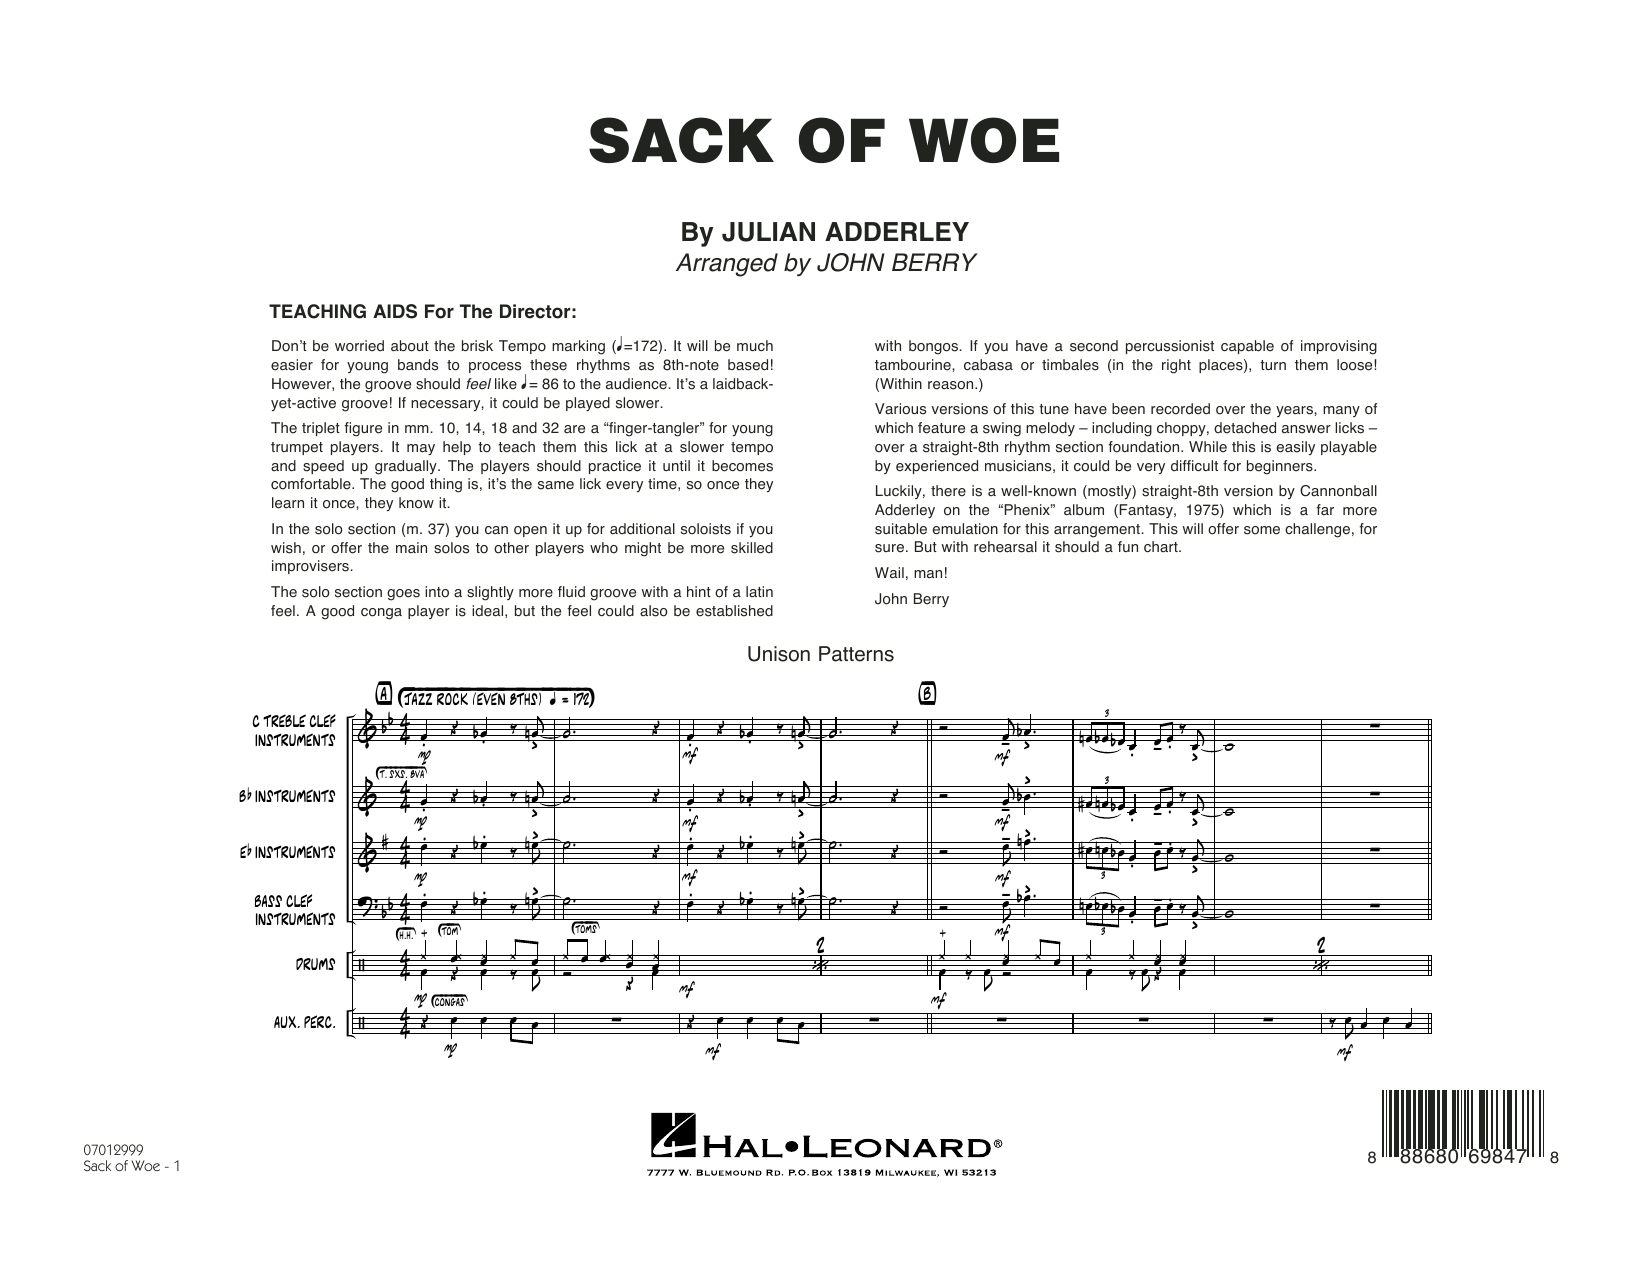 George Benson - Sack of Woe - Conductor Score (Full Score)